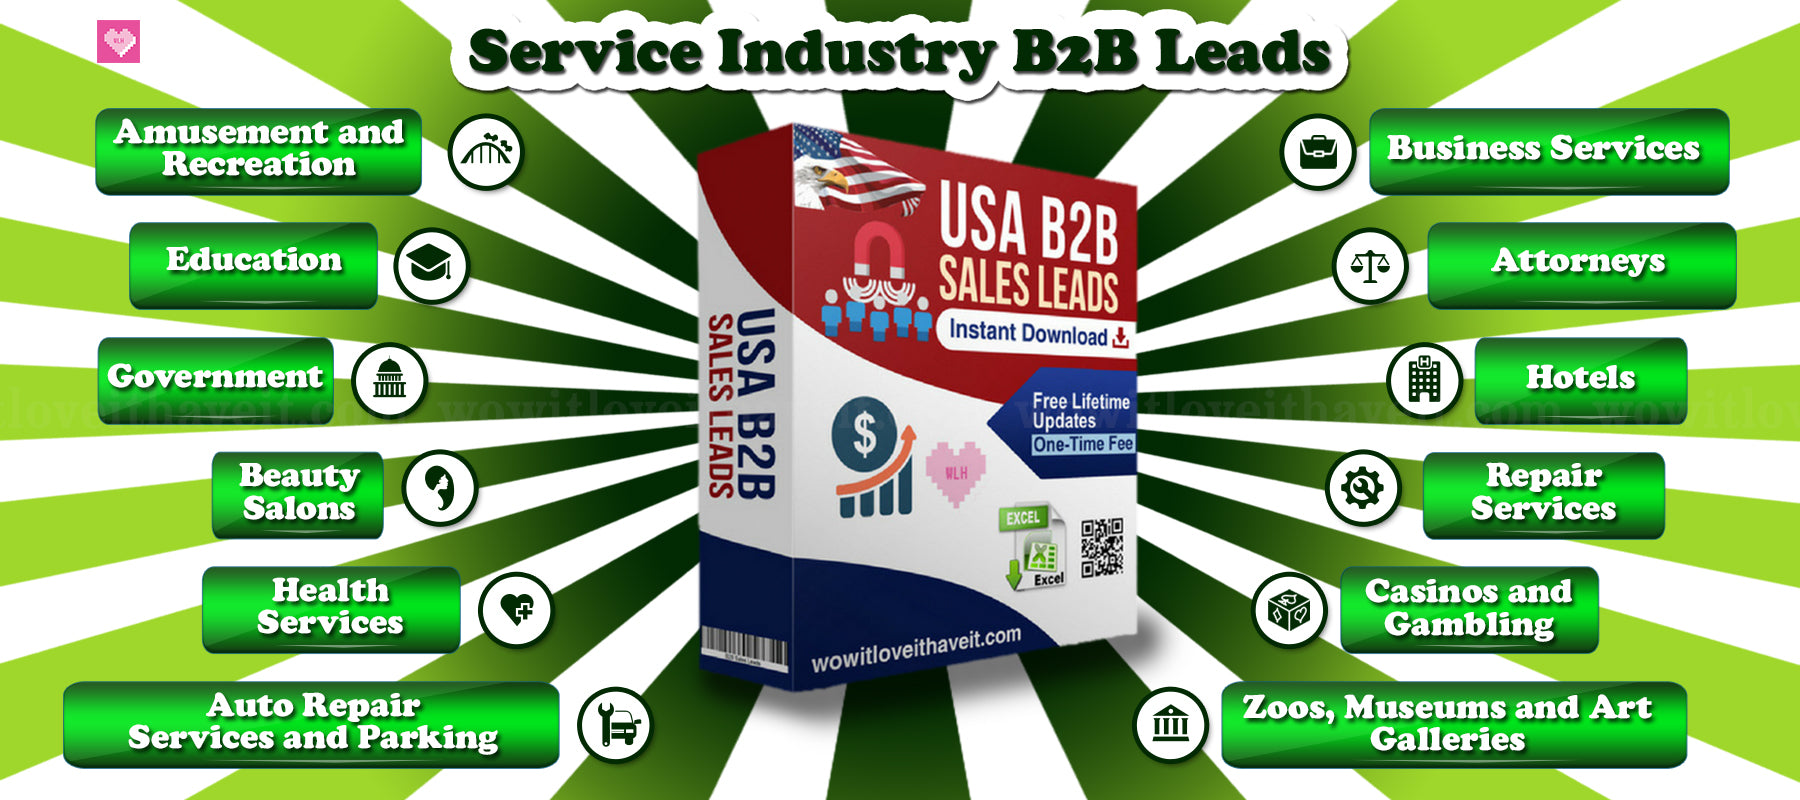 Business Service Industry Mailing Lists and Email Lists